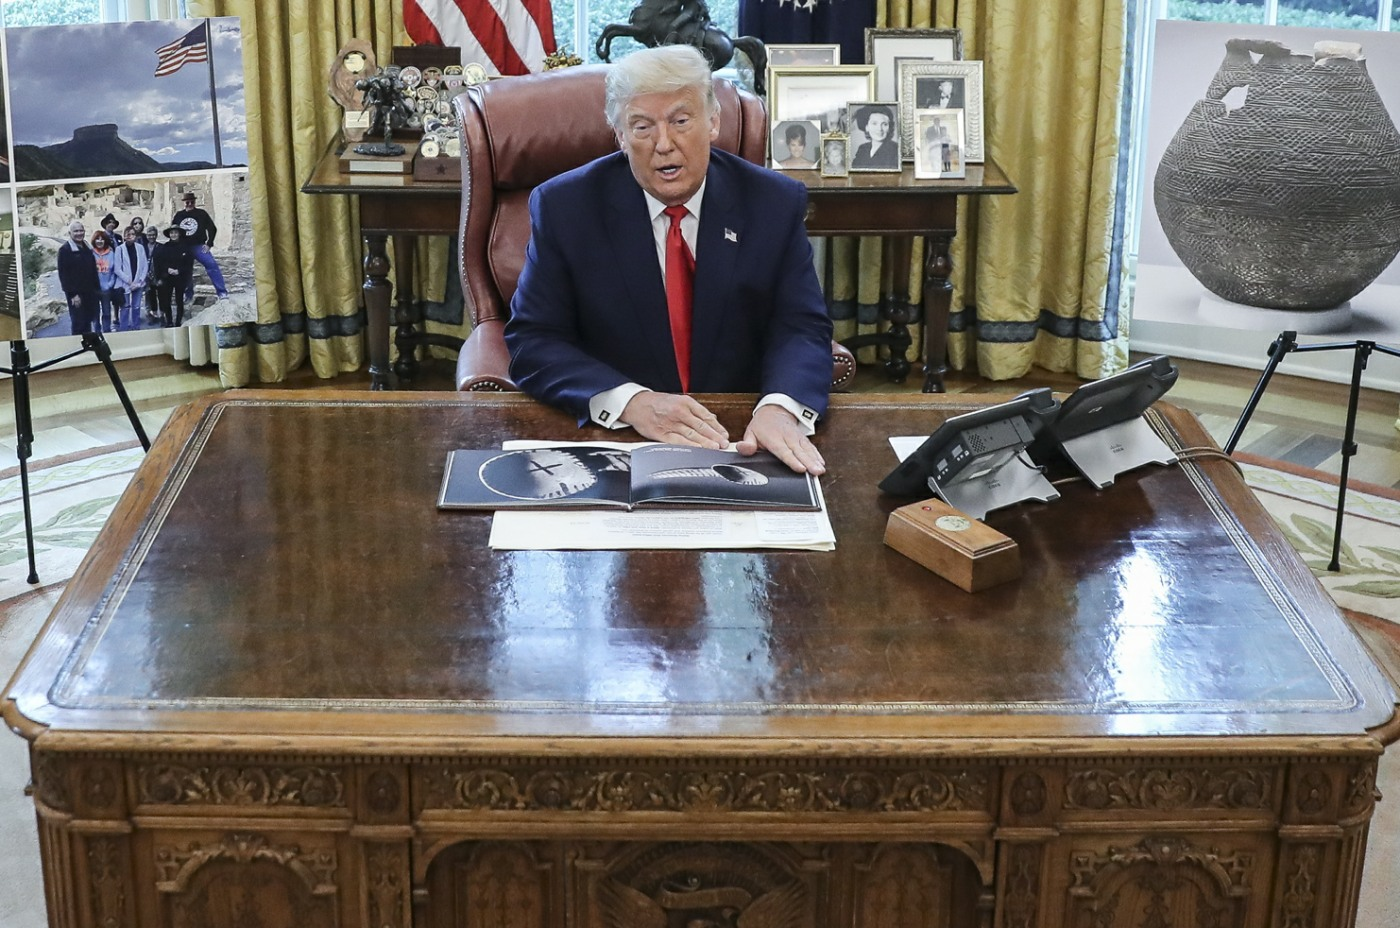 Trump Oval Office Event Commemorating the Repatriation of Native American Remains and Artifacts from the Republic of Finland